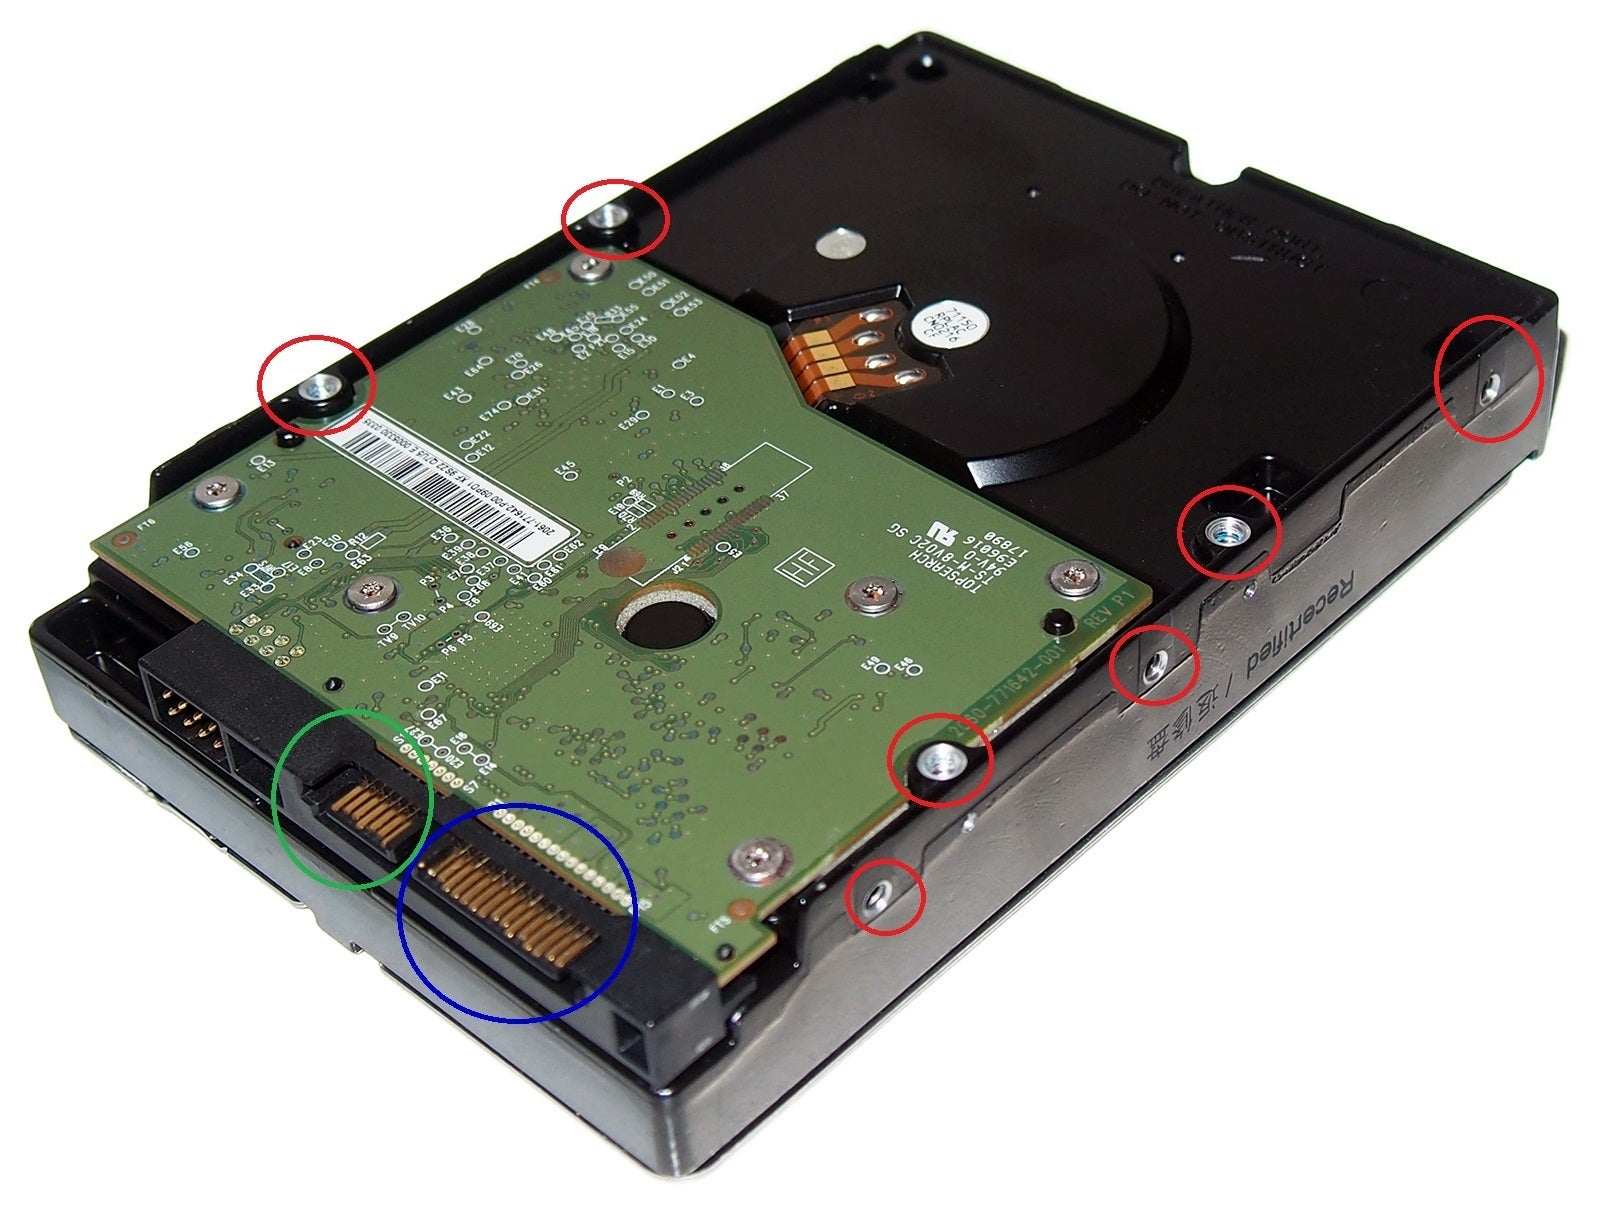 What the hell is going on with hard drive mounting holes